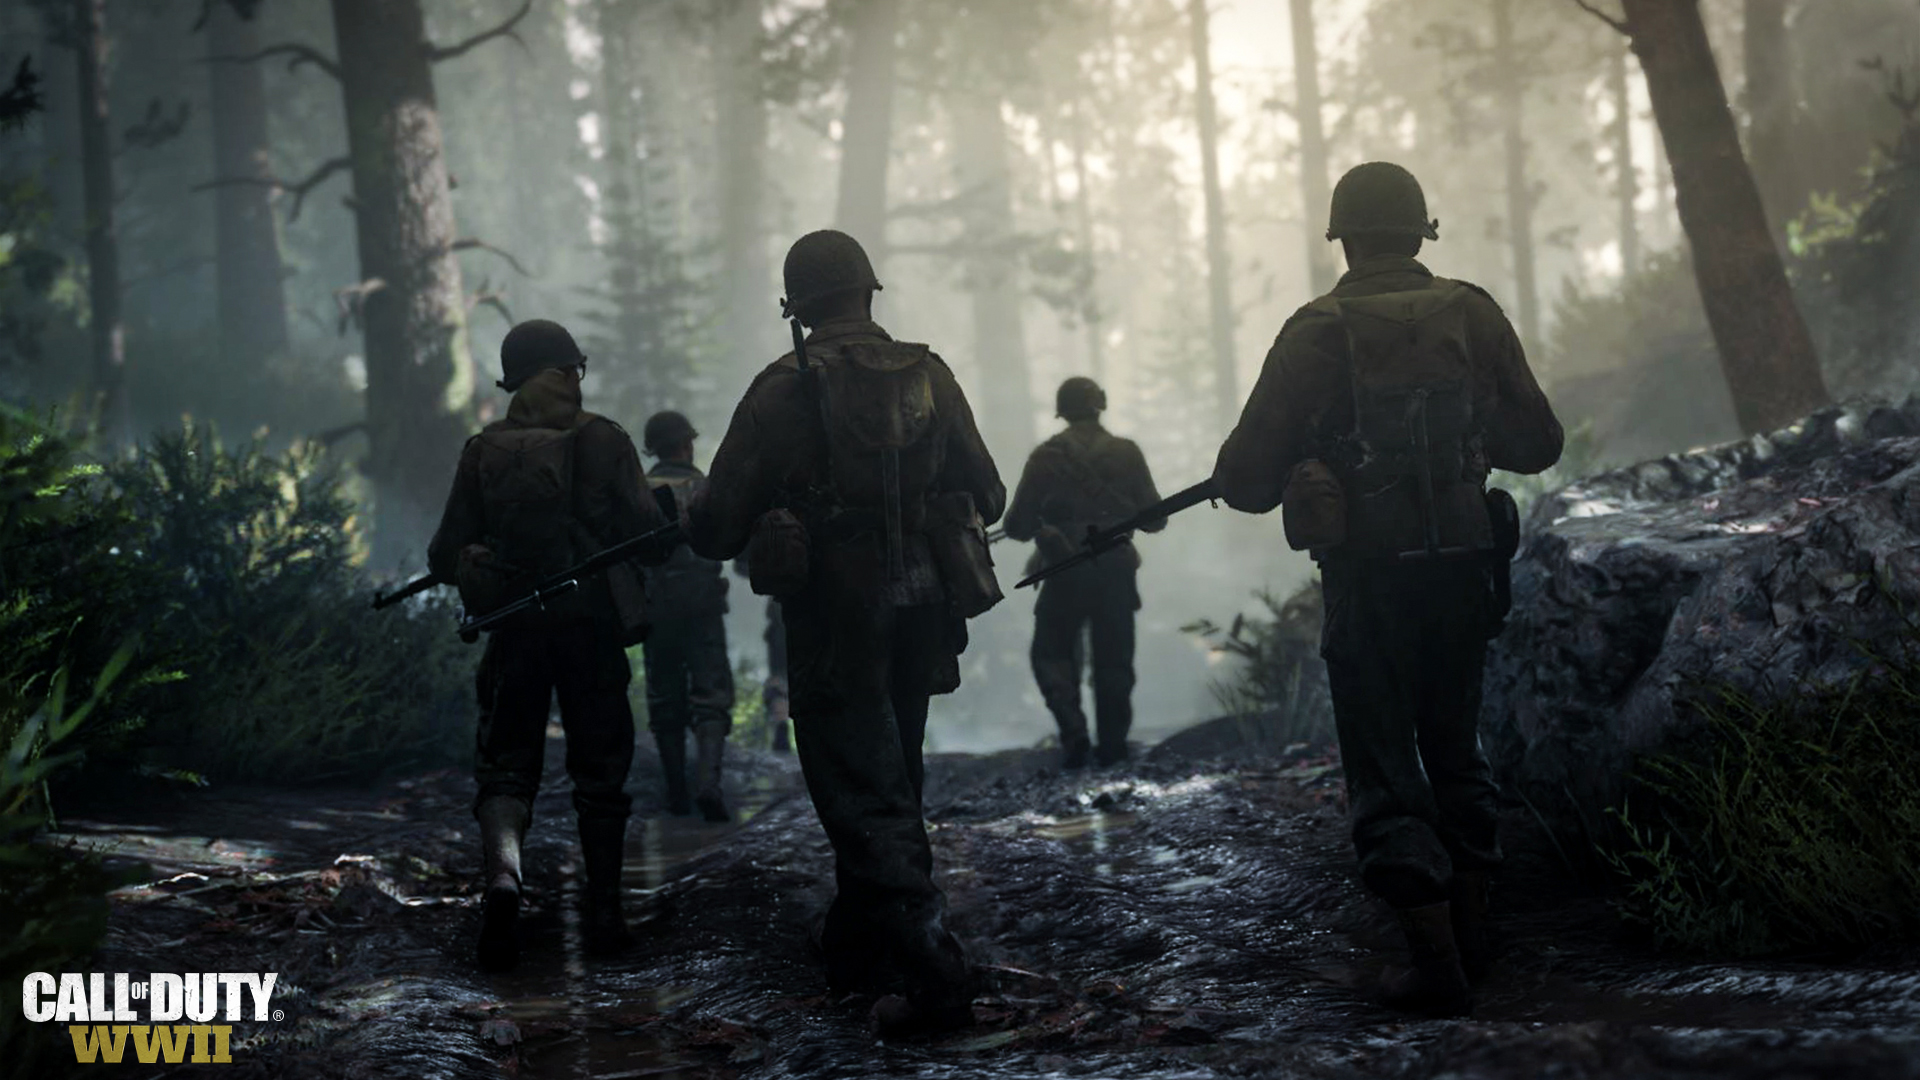 Call of Duty WWII Unveiled Features Immersive Narrative 1920x1080